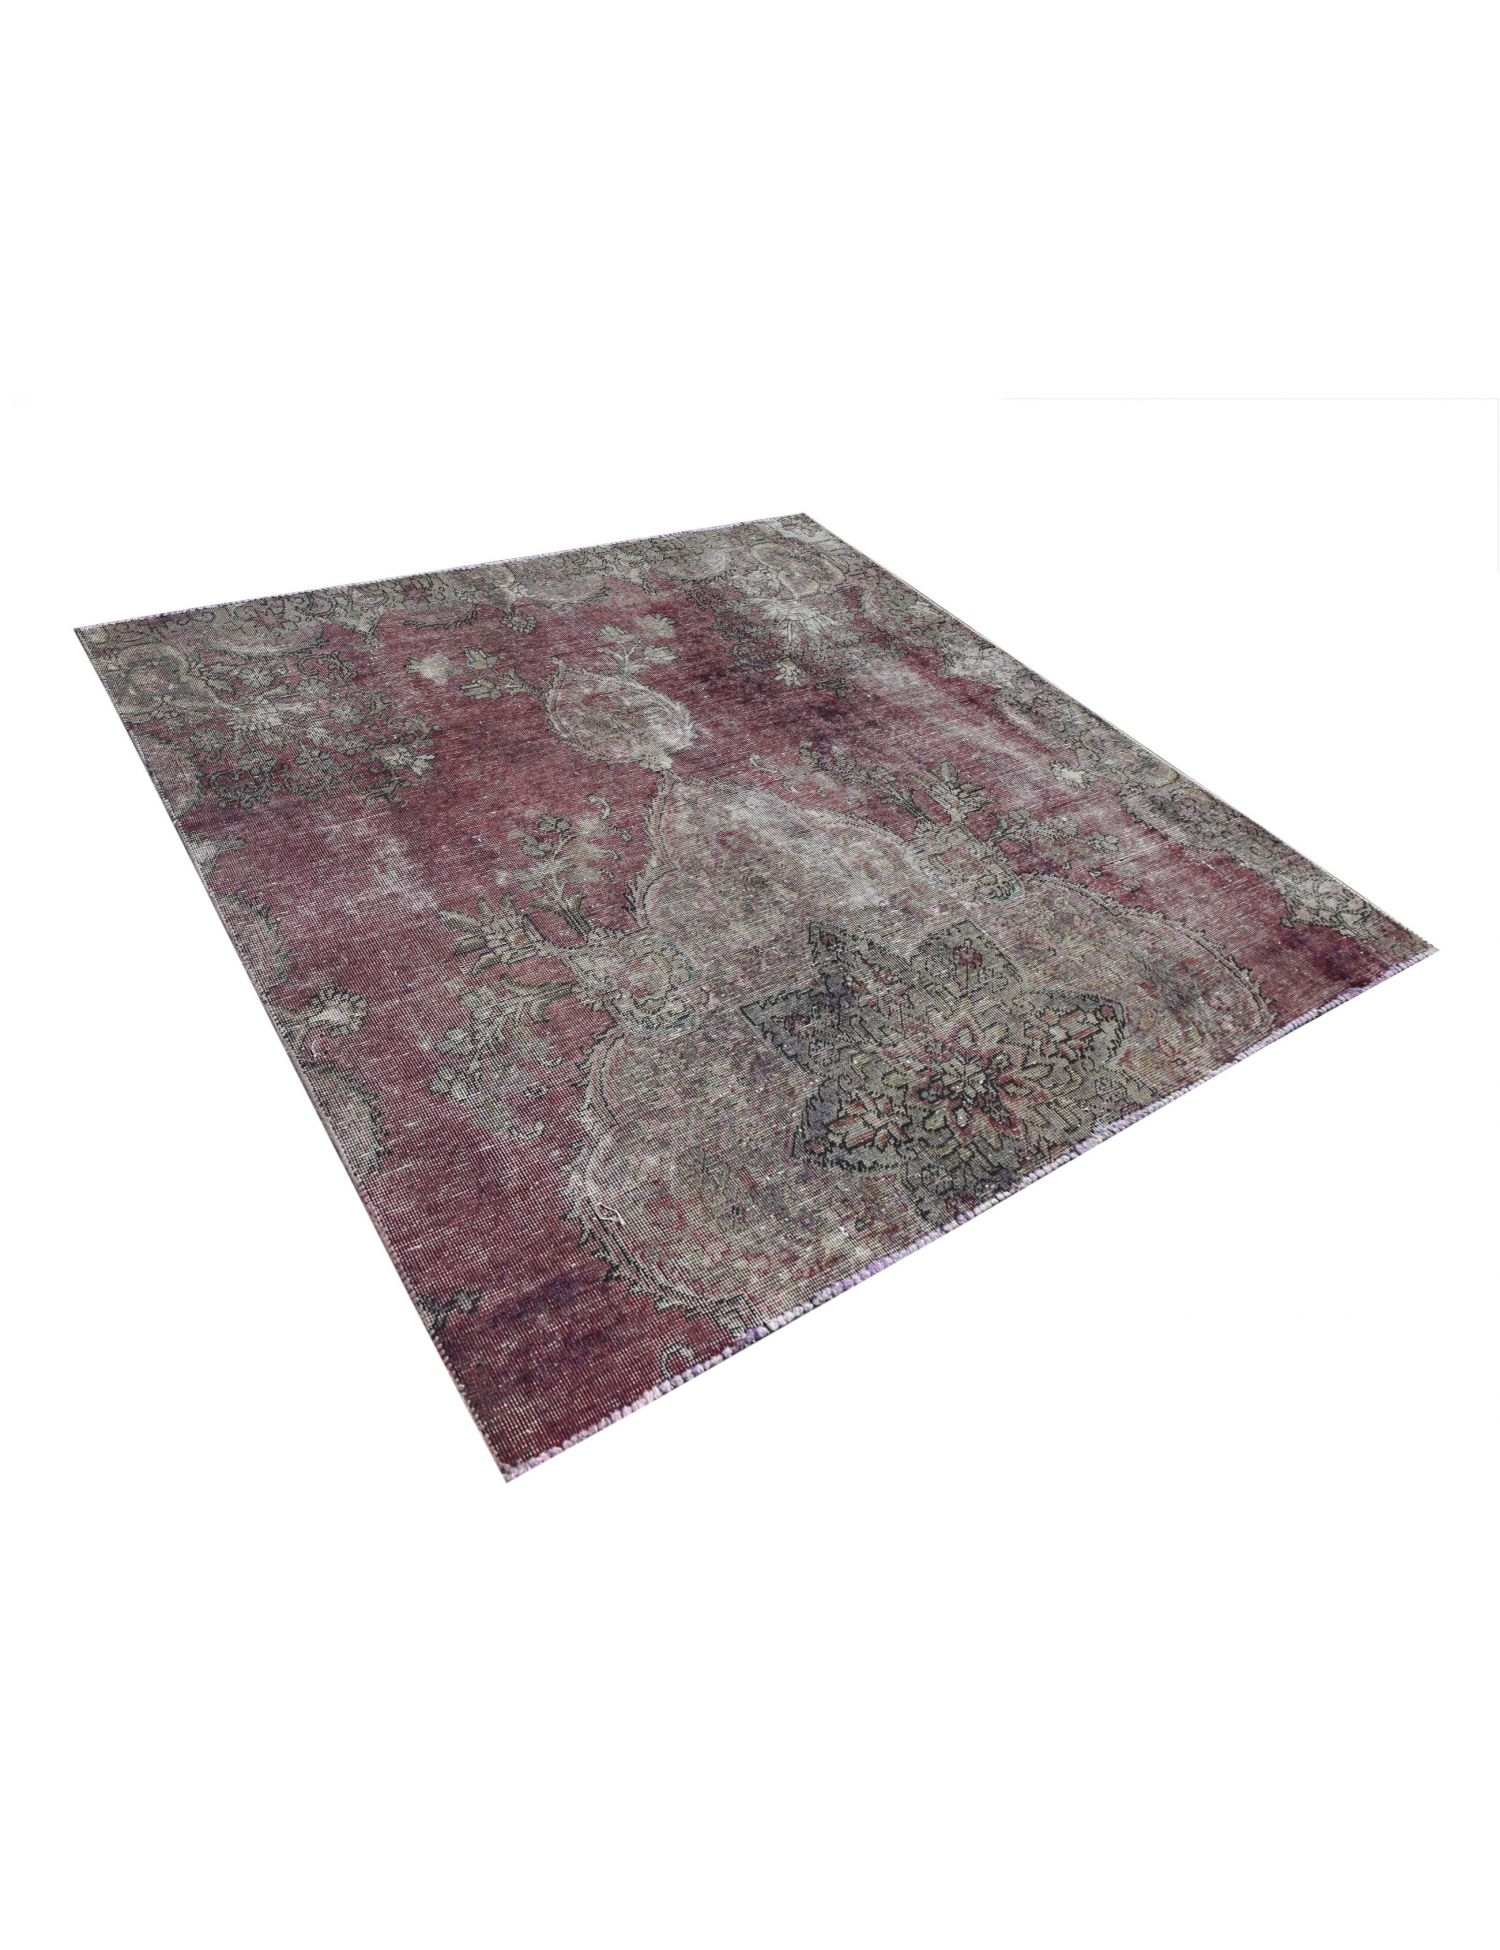 Vintage Carpets  purple <br/>162 x 179 cm